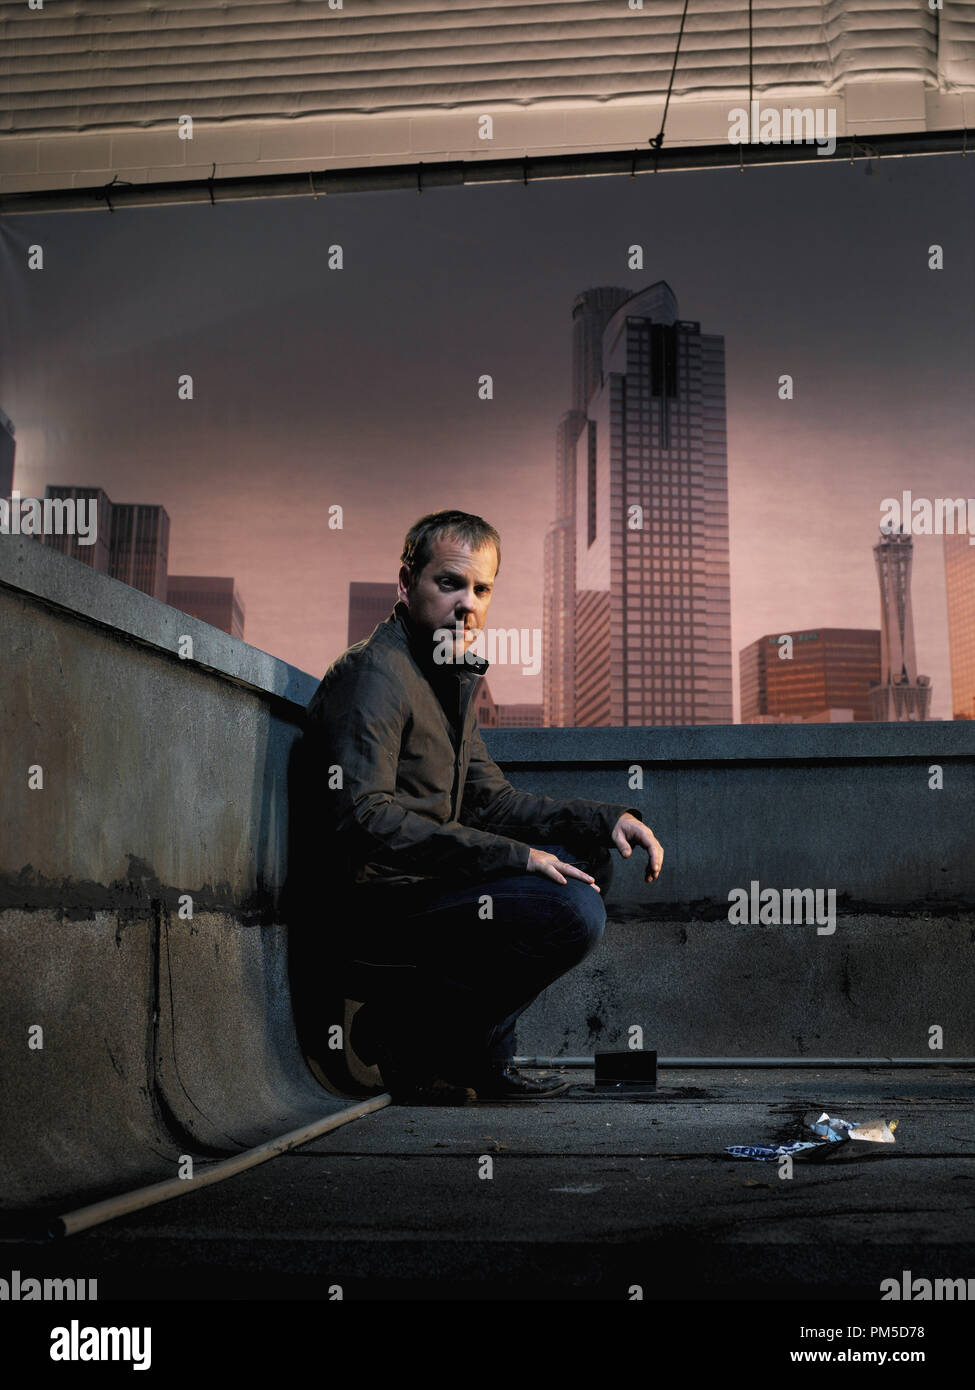 Studio Publicity Still from '24' Kiefer Sutherland 2005   File Reference # 307362364THA  For Editorial Use Only -  All Rights Reserved - Stock Image